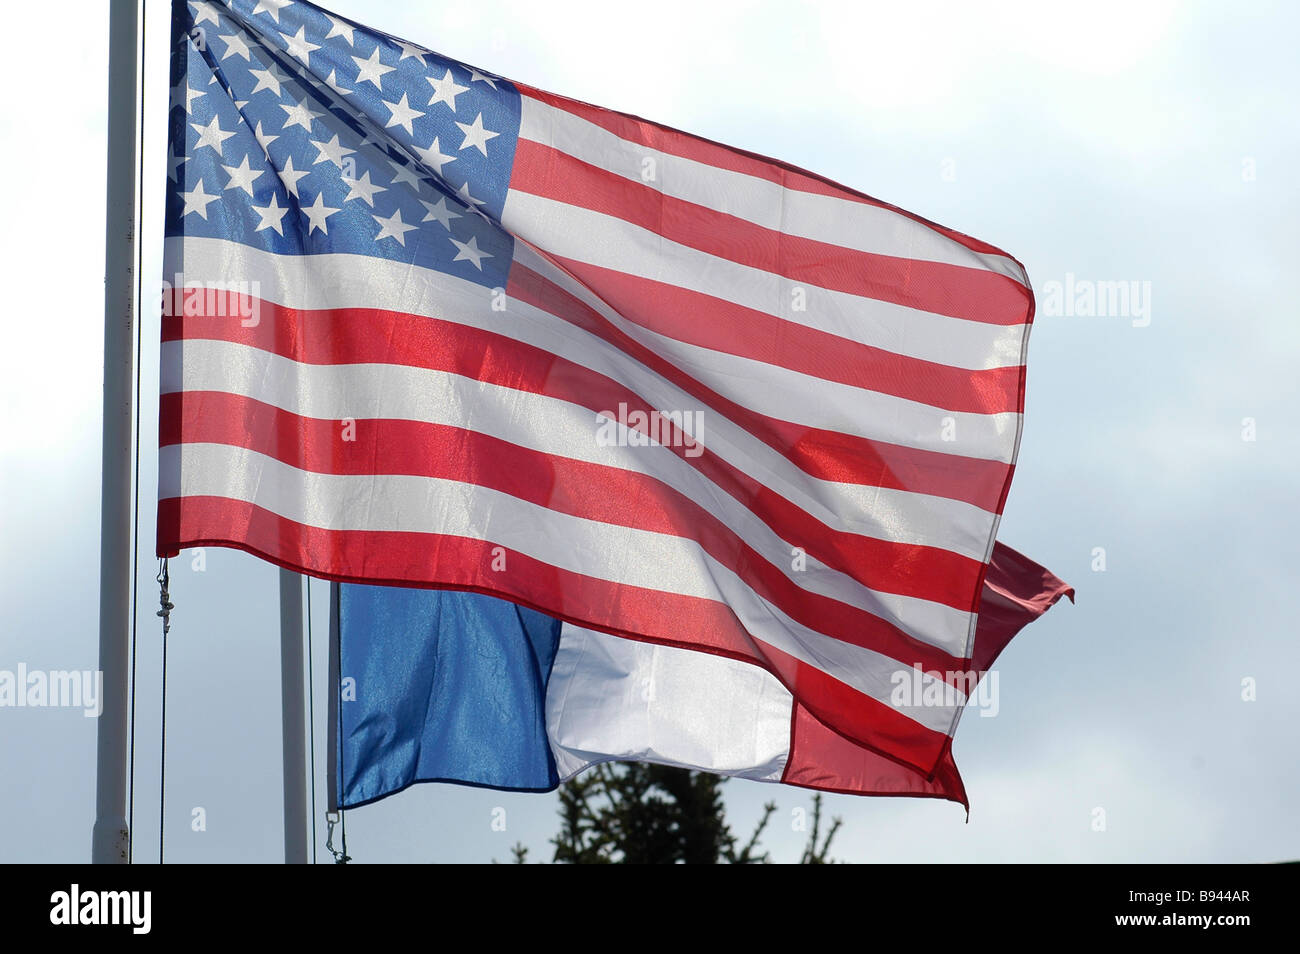 Flags of France and Unites States - Stock Image